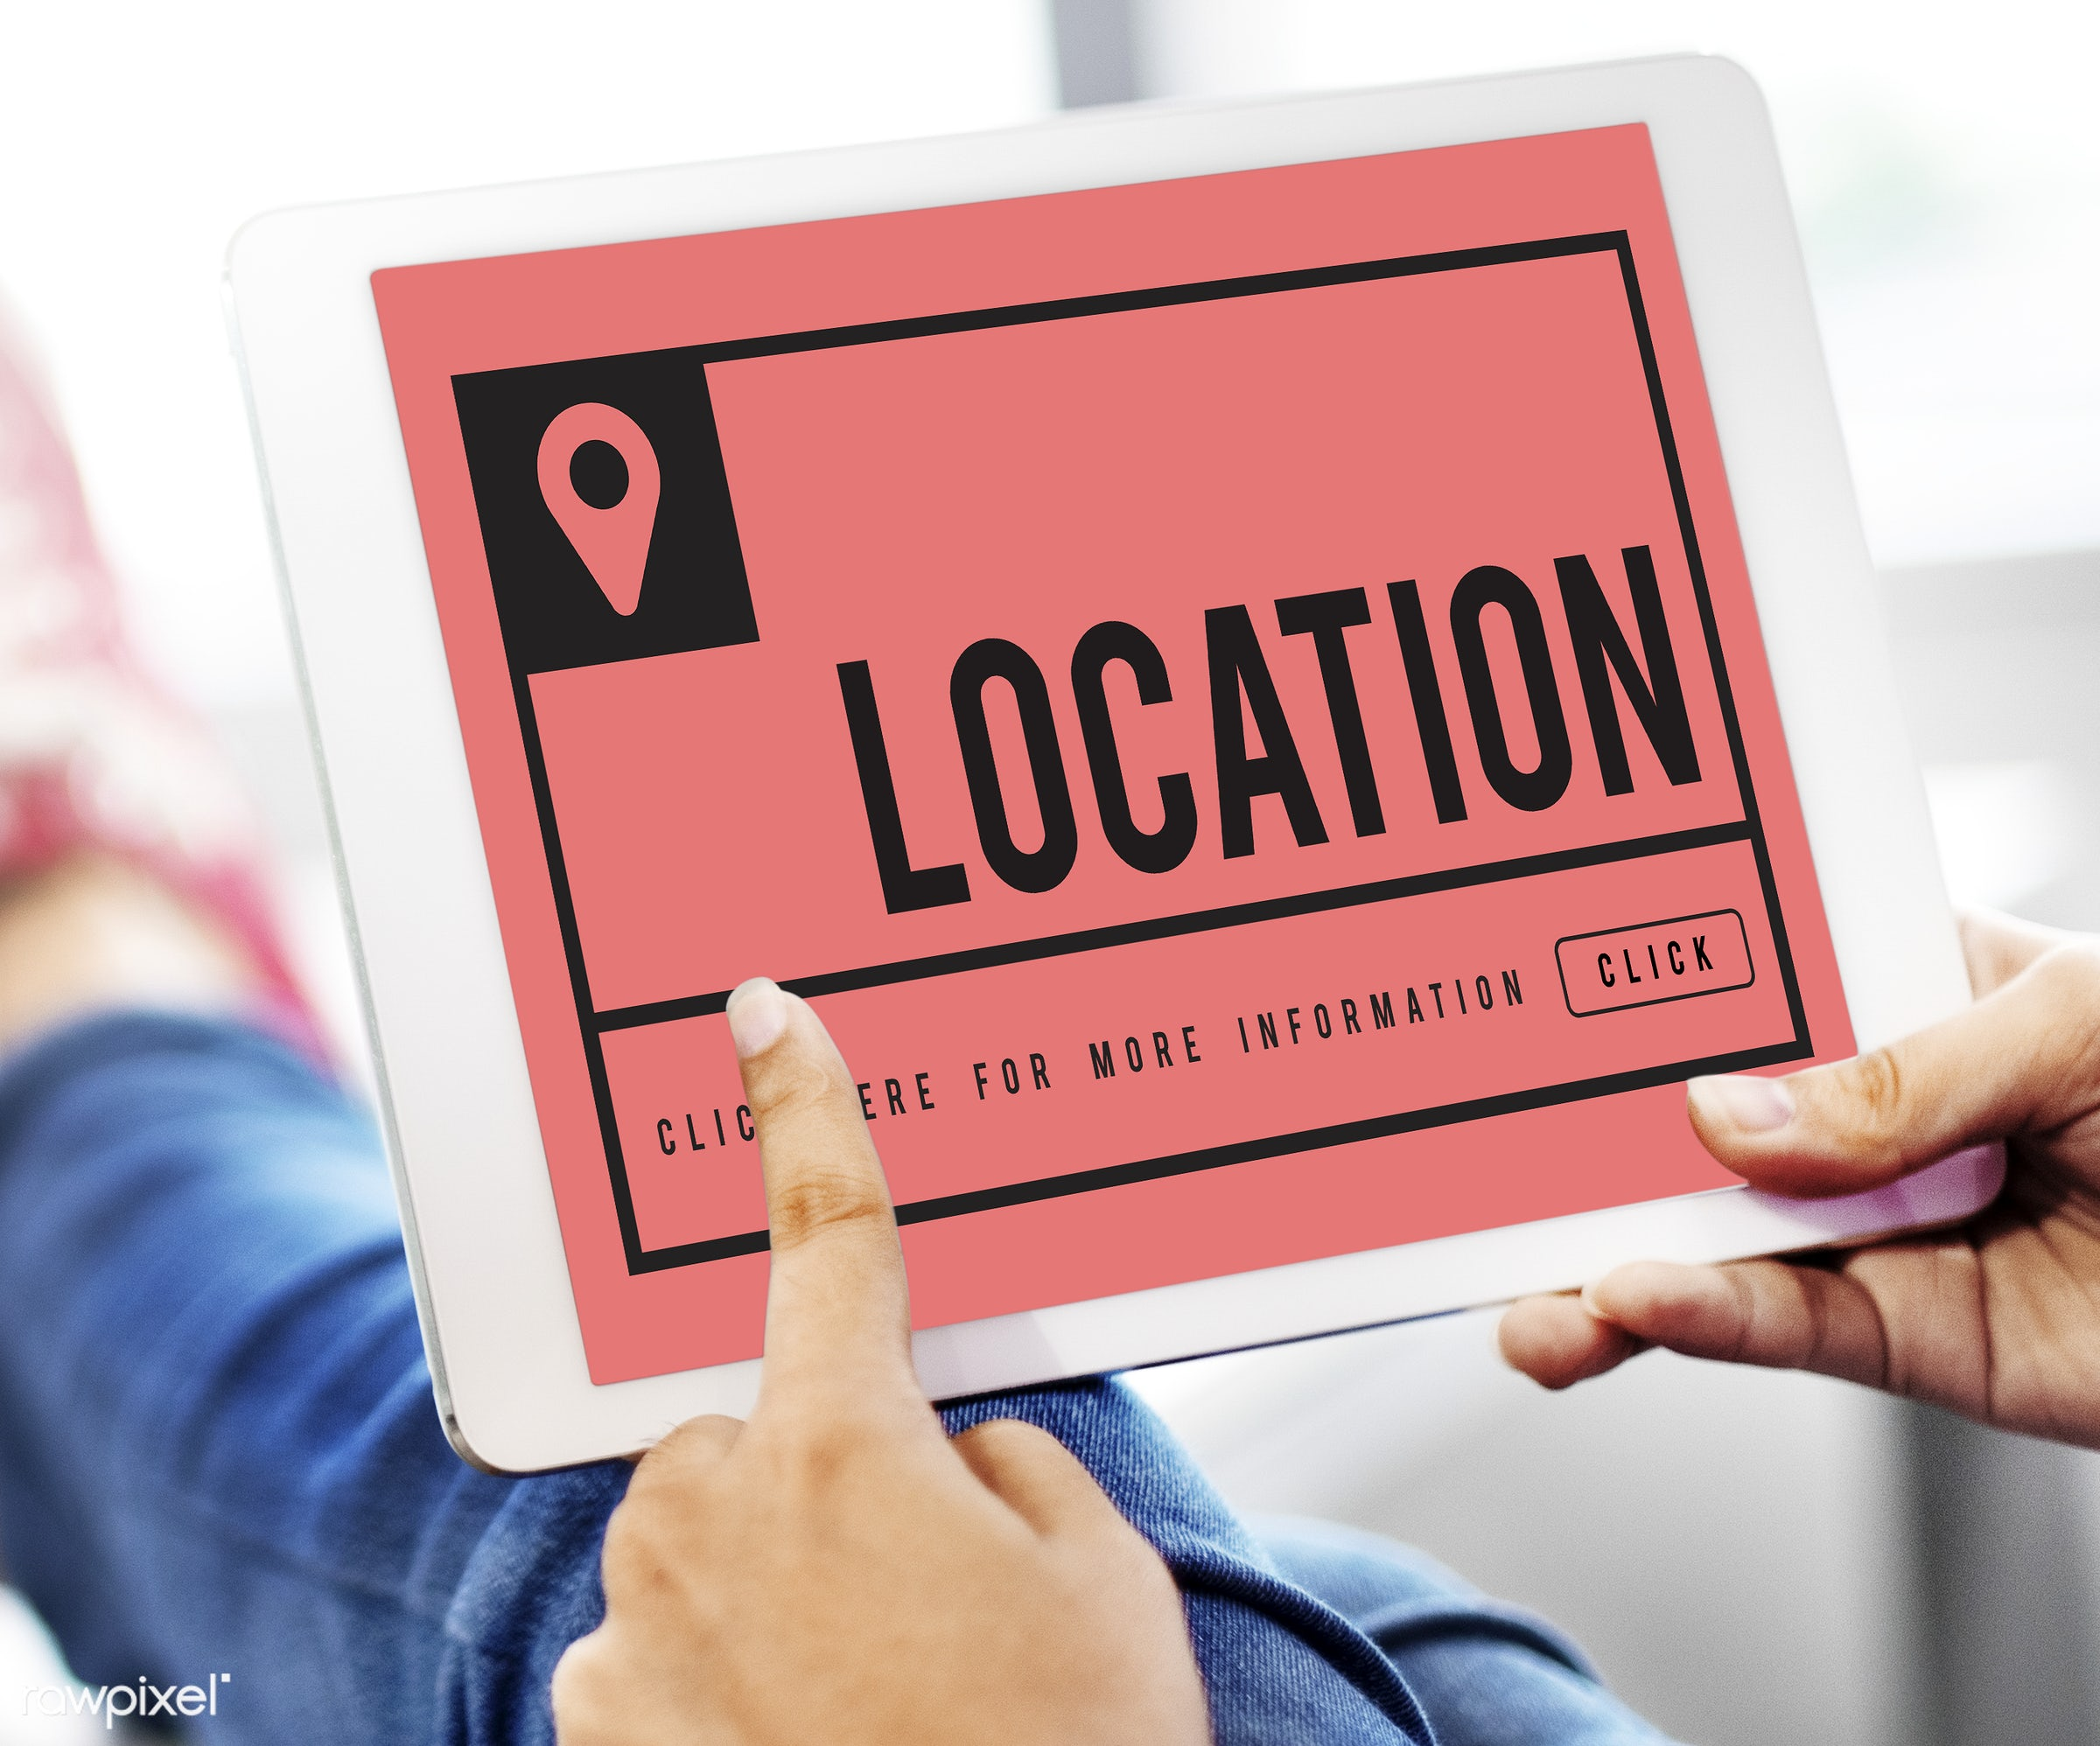 application, browsing, casual, destination, digital tablet, direction, gps, graphic, guide, hands, icon, information,...